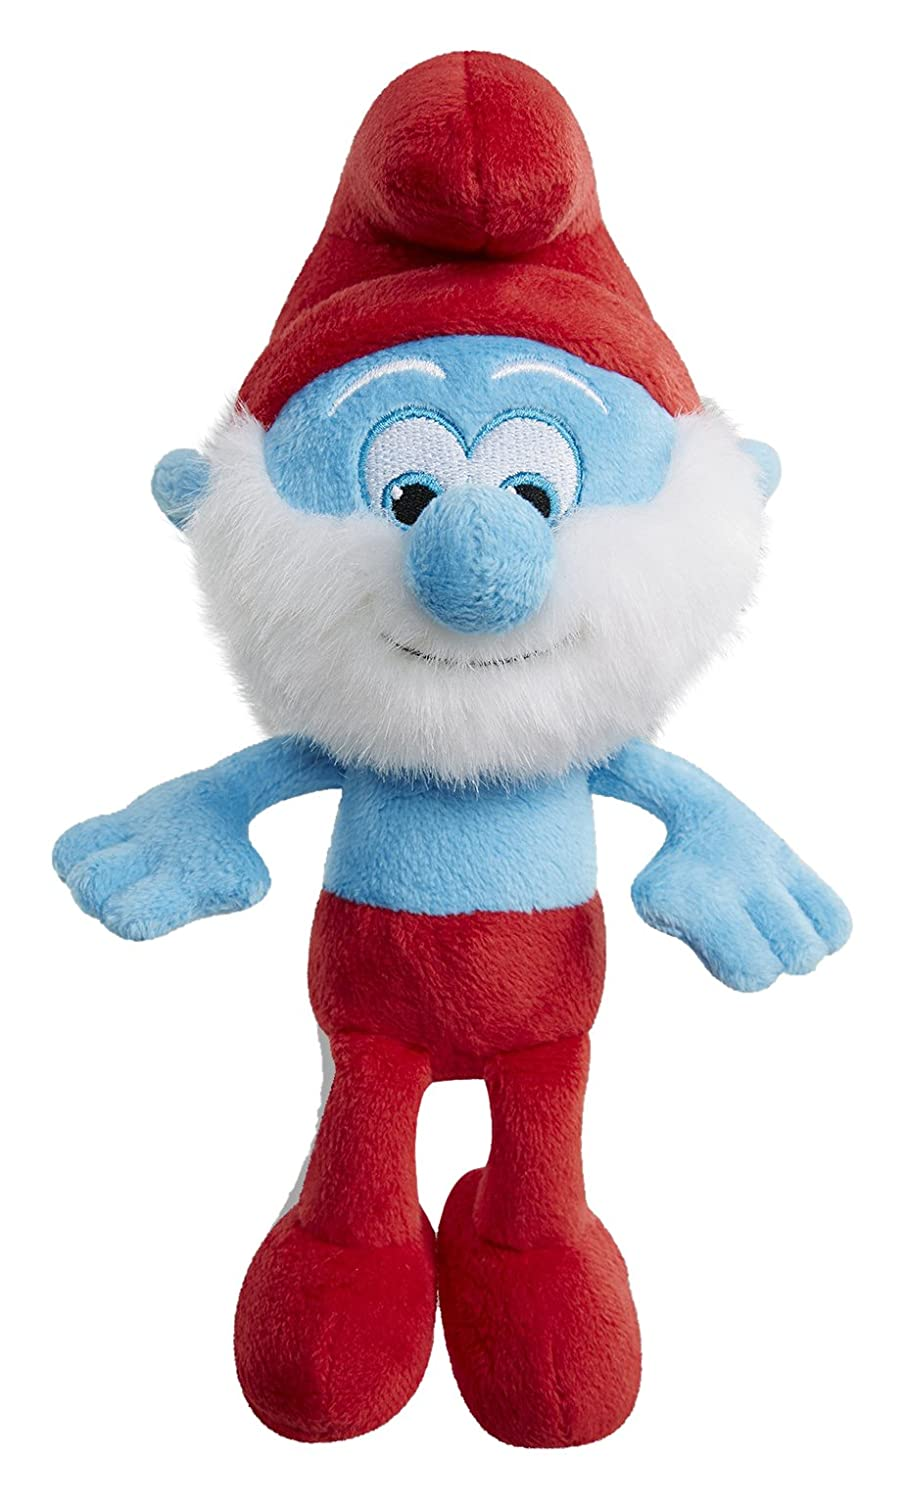 Smurfs The Lost Village Papa Smurf Bean Bag, 8 8 Jakks 96577